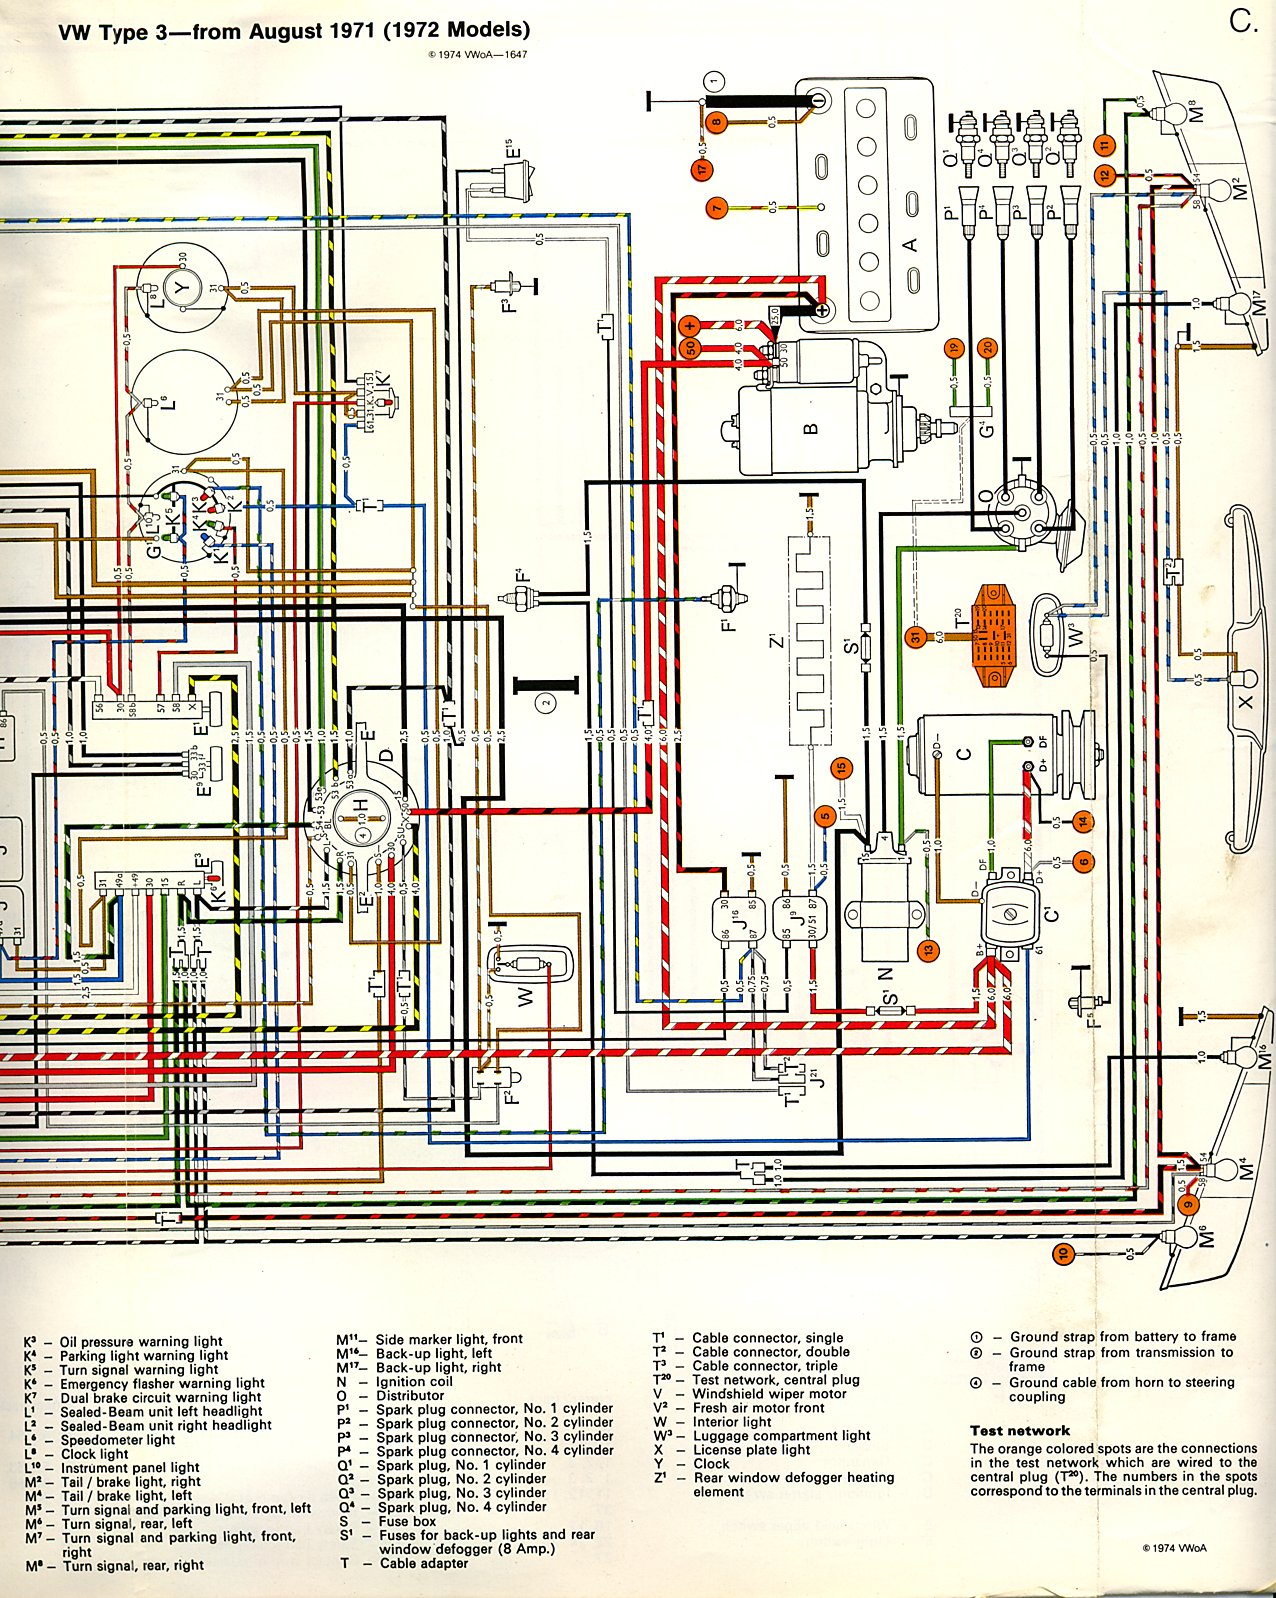 Type 3 Wiring Diagram - Wiring Diagram K8 Jaguar Wiper Motor Wiring Diagram on